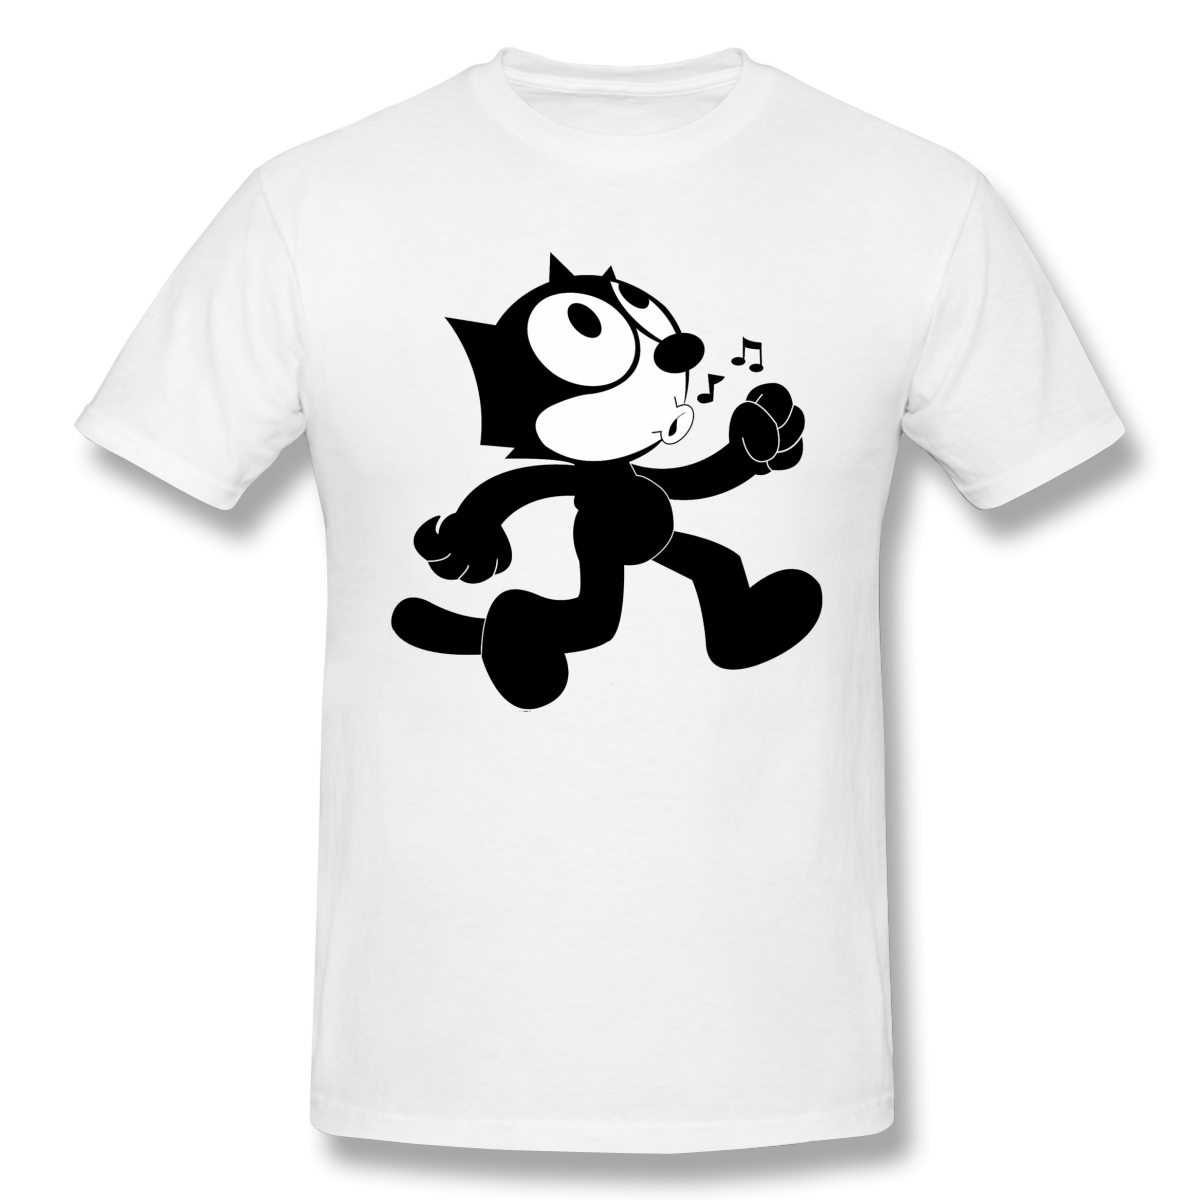 Felix The Cat T Shirt Popular Men's Short Sleeve Men White Printed Tshirt Summer Large TShirts Cotton Tops